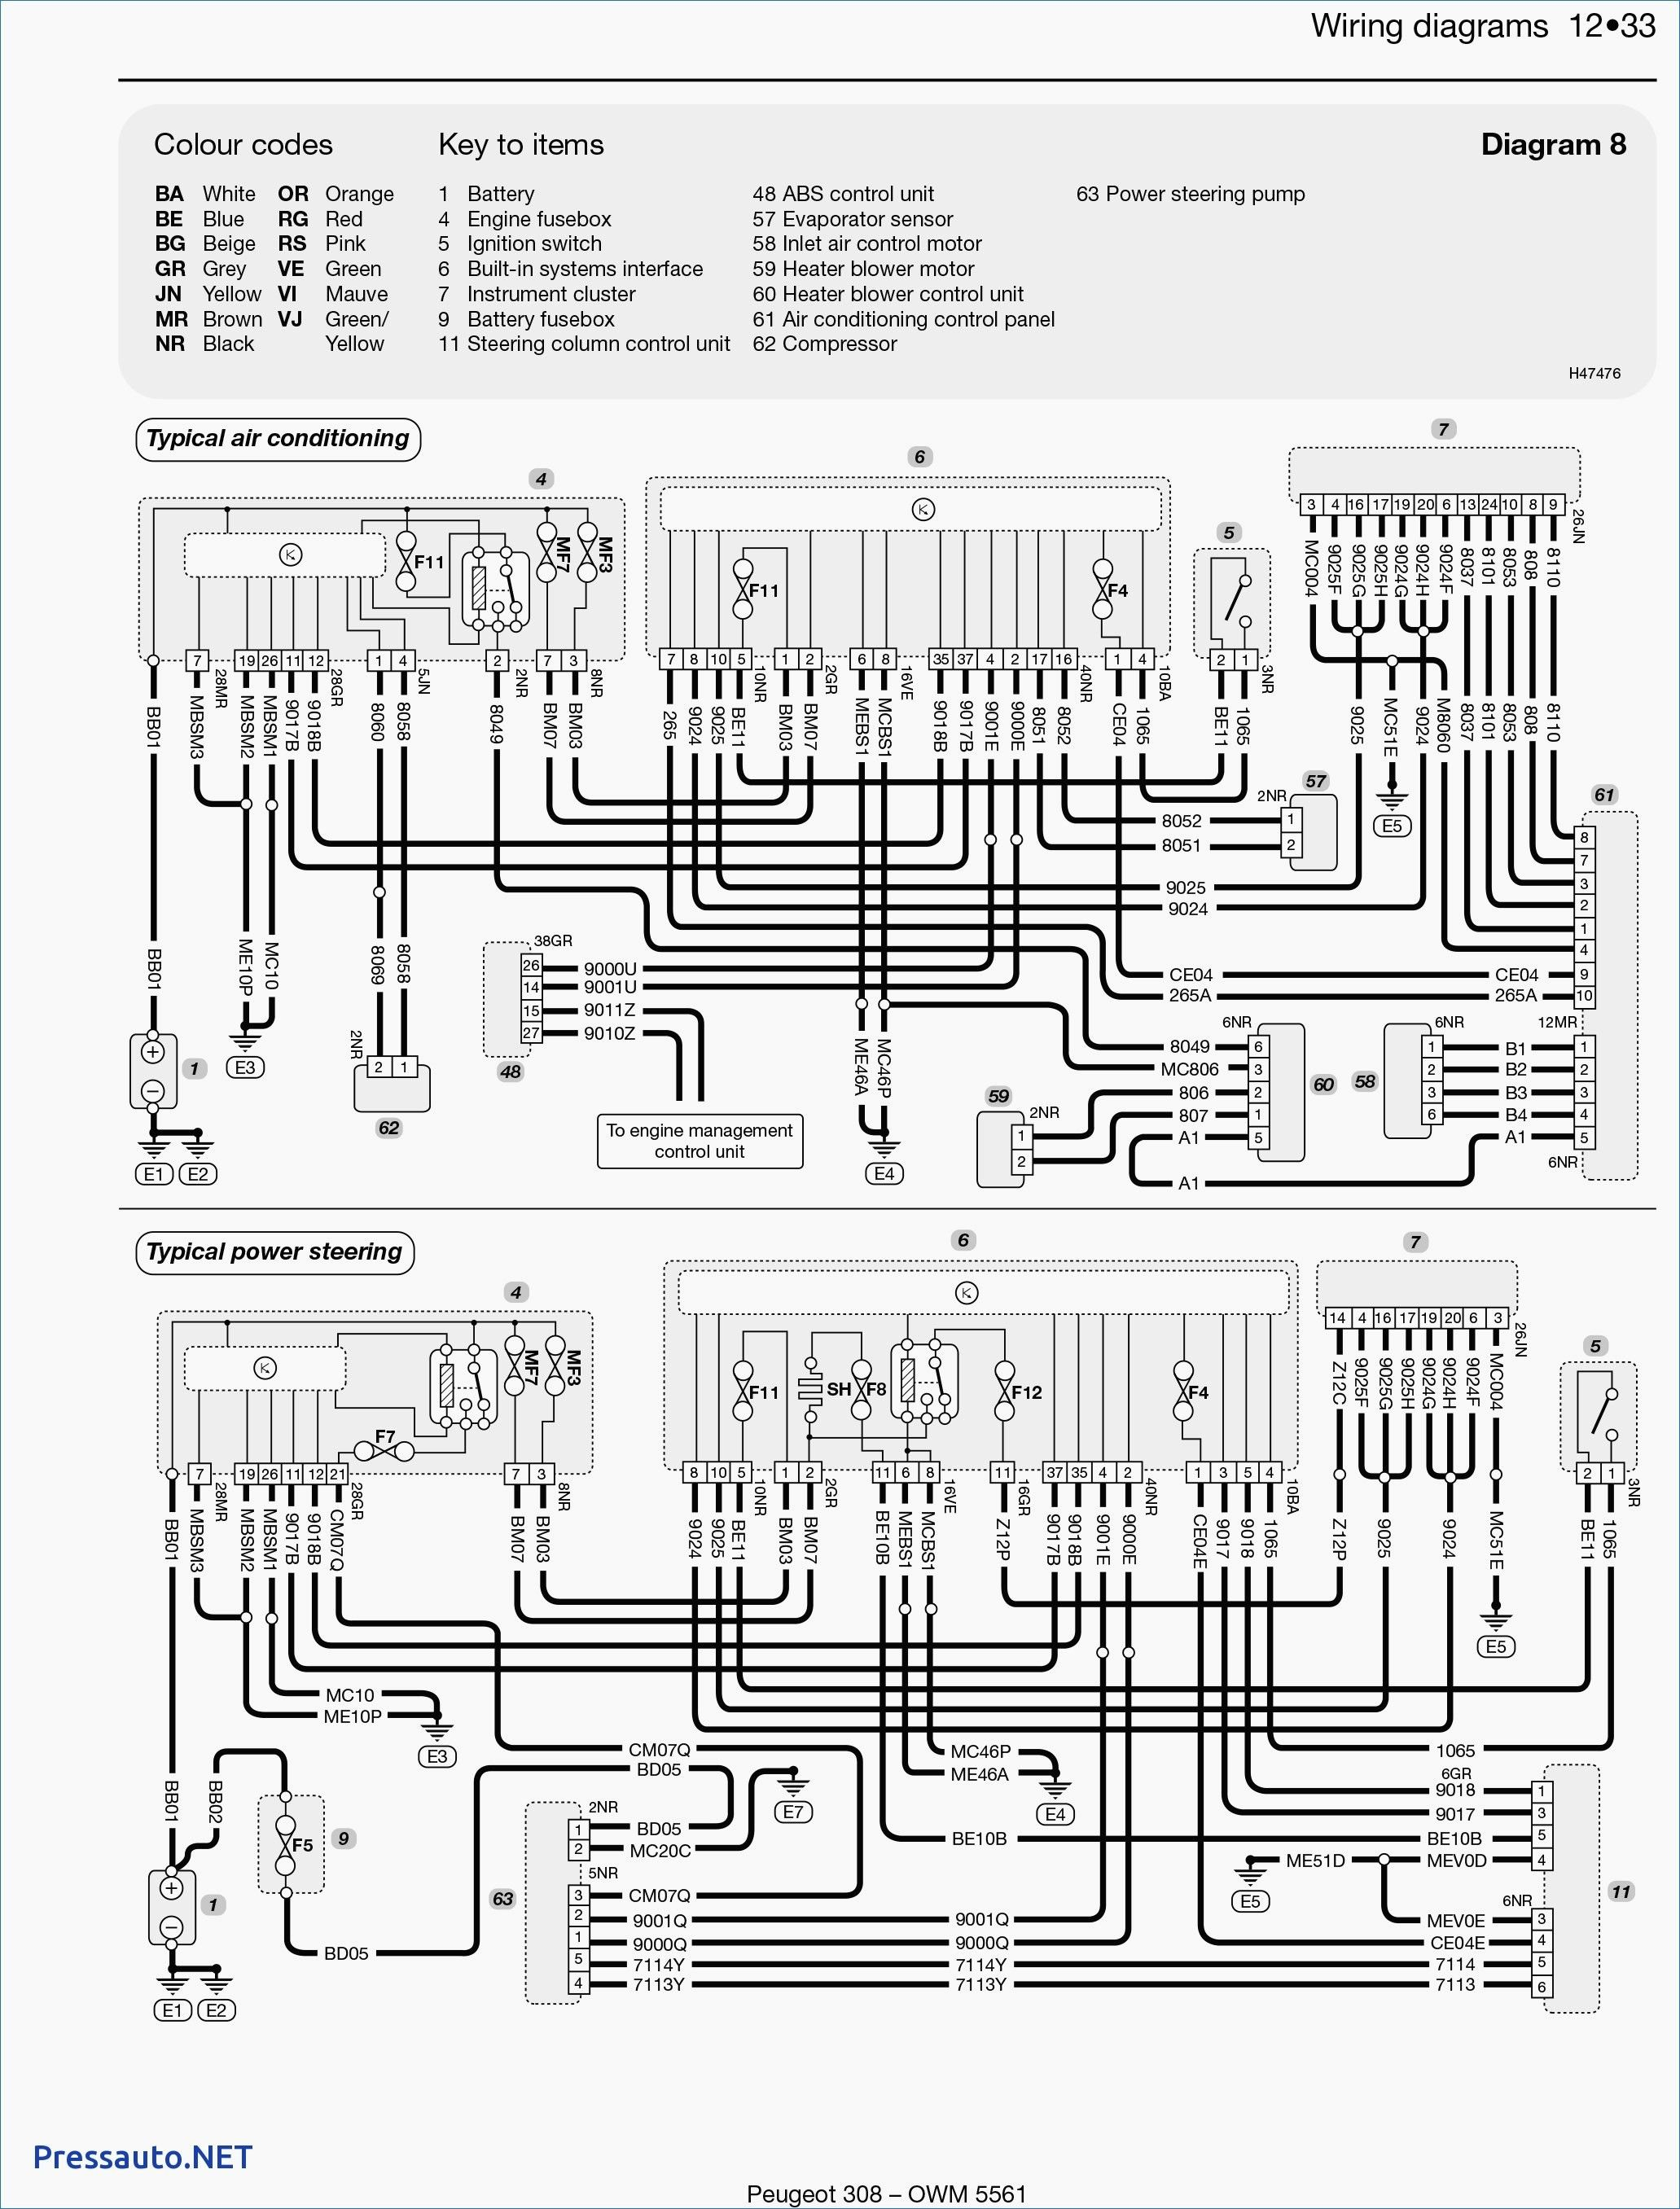 peugeot 405 fuse box pdf wiring diagram will be a thing u2022 rh exploreandmore co uk peugeot 607 2.2 hdi wiring diagram peugeot 607 electrical wiring diagram